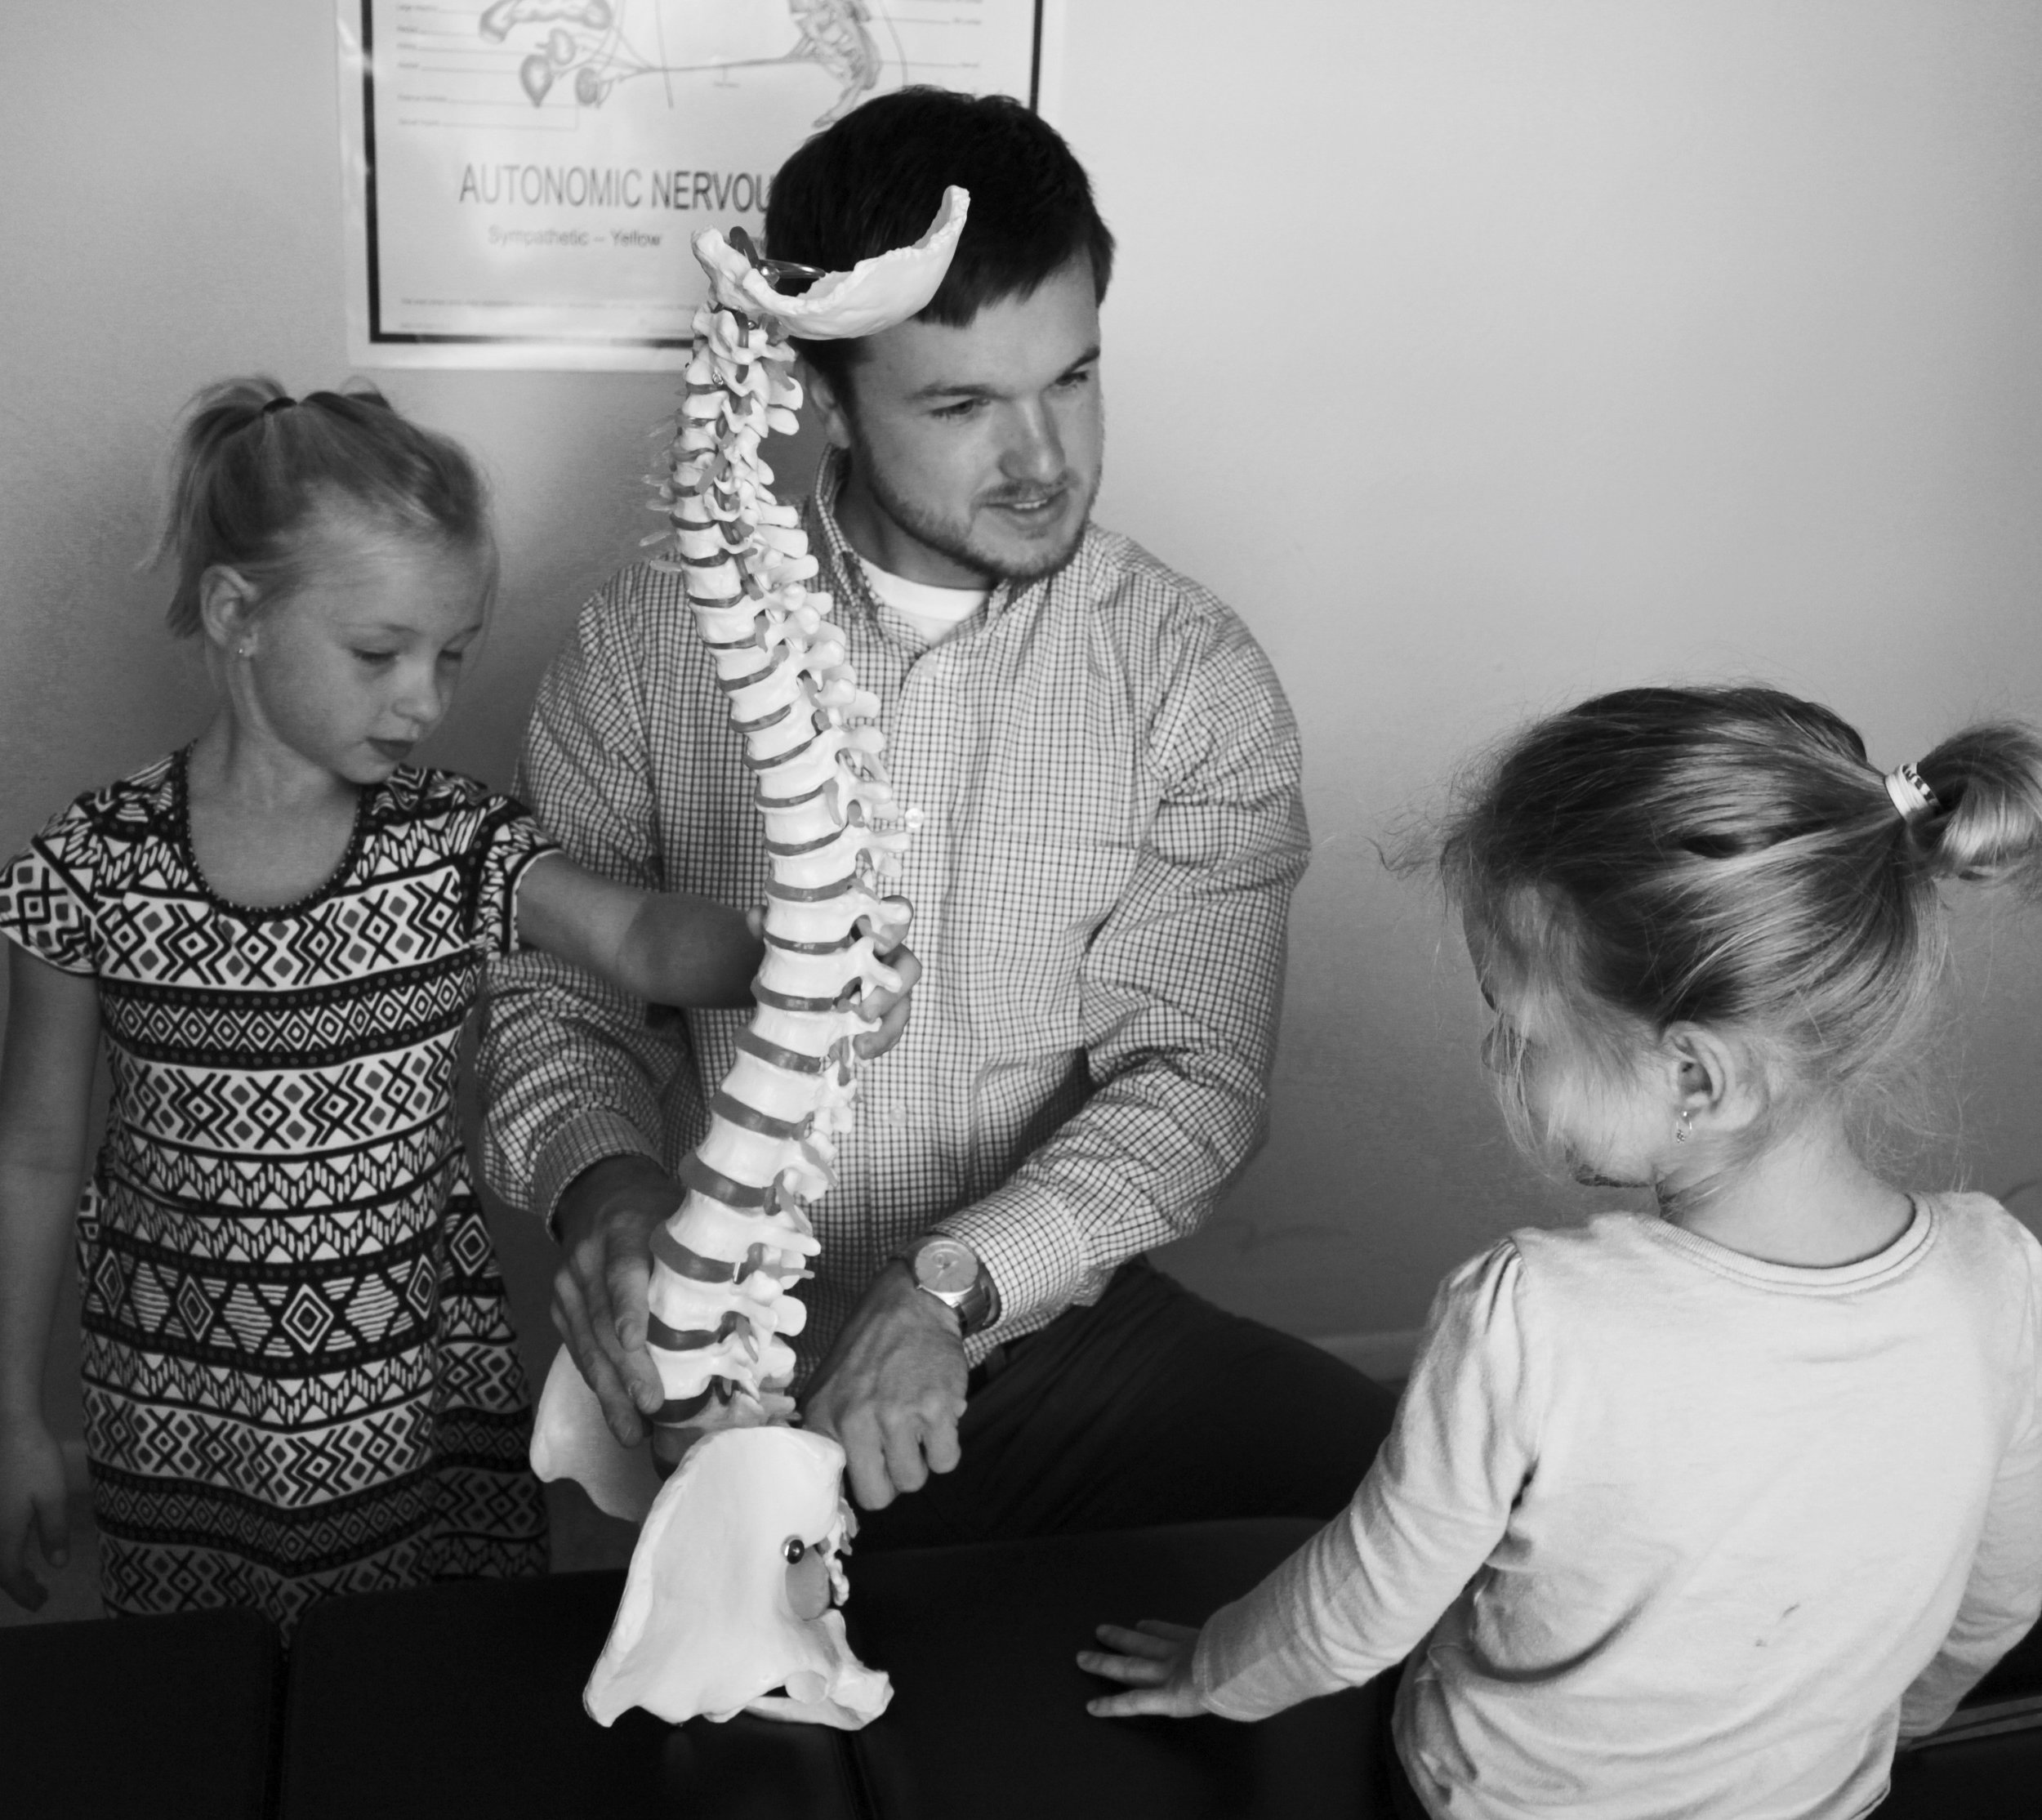 Dr. Erik is a member of the International Chiropractic Pediatric Association (ICPA) and has spent numerous post graduate hours honing his skills in pediatric and maternal care. He is also certified in the Webster technique which is a technique often utilized to restore optimal pelvic function during pregnancy.